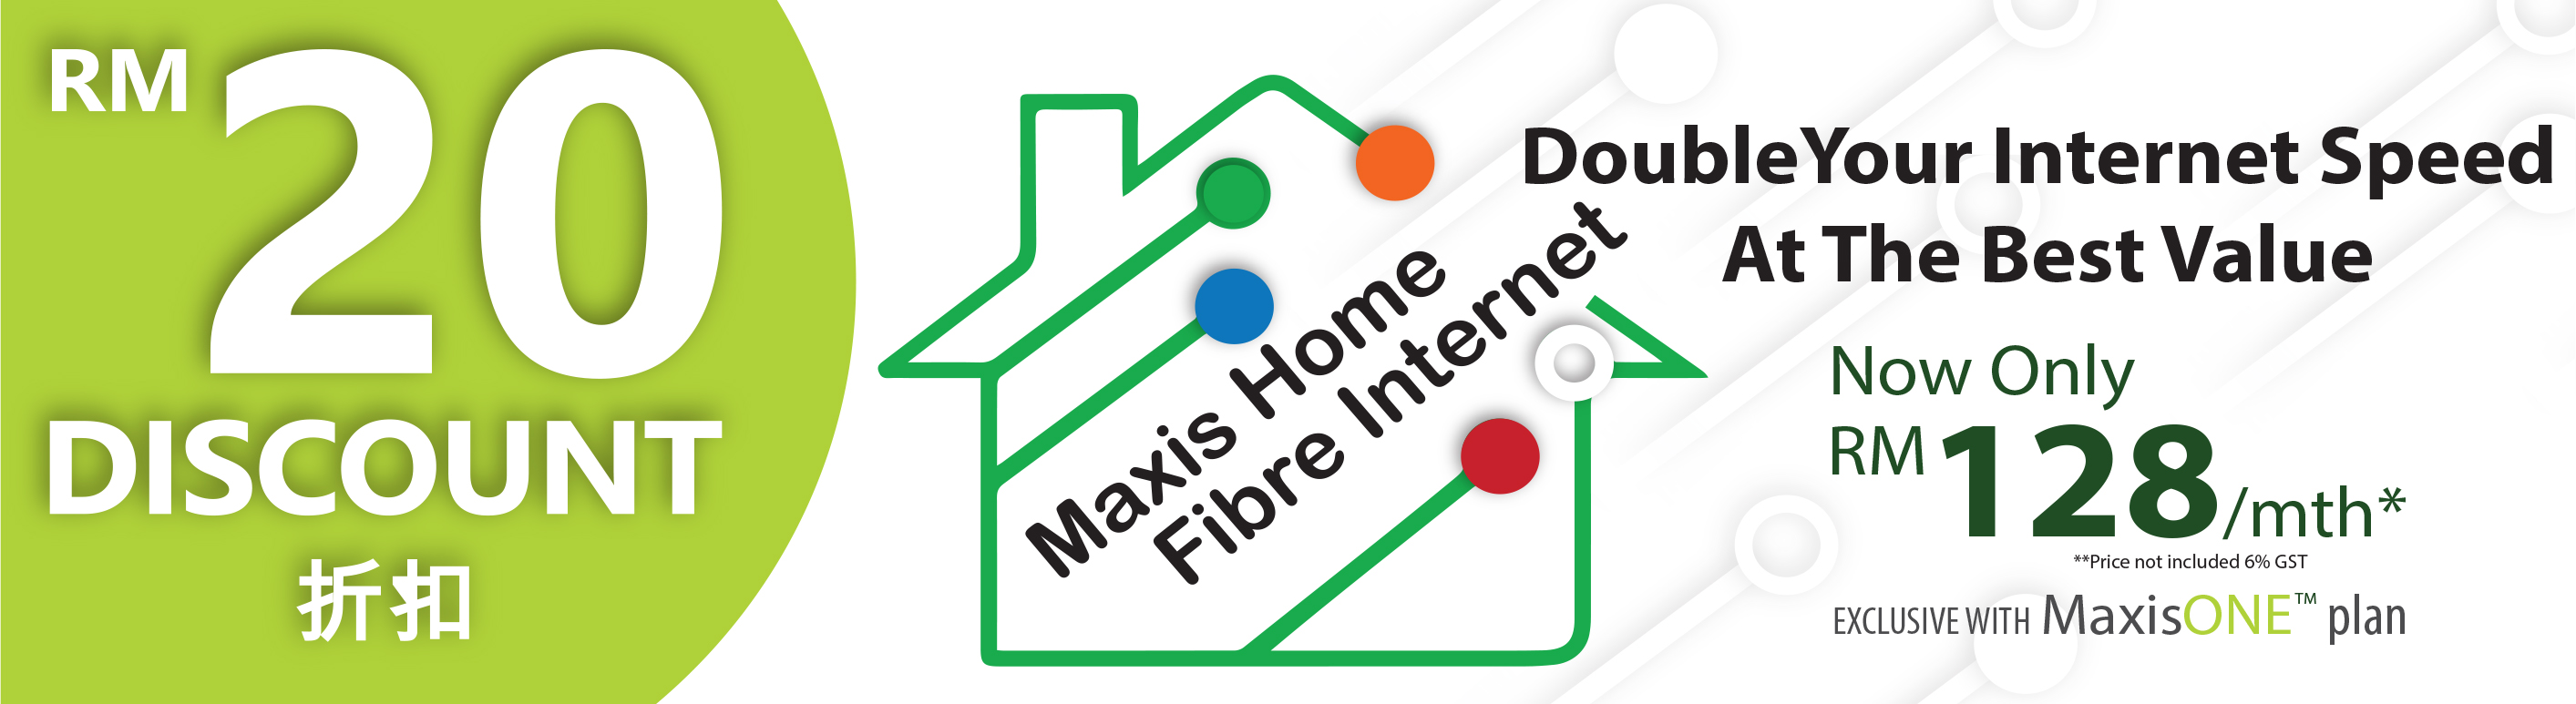 maxis home fibre promotion